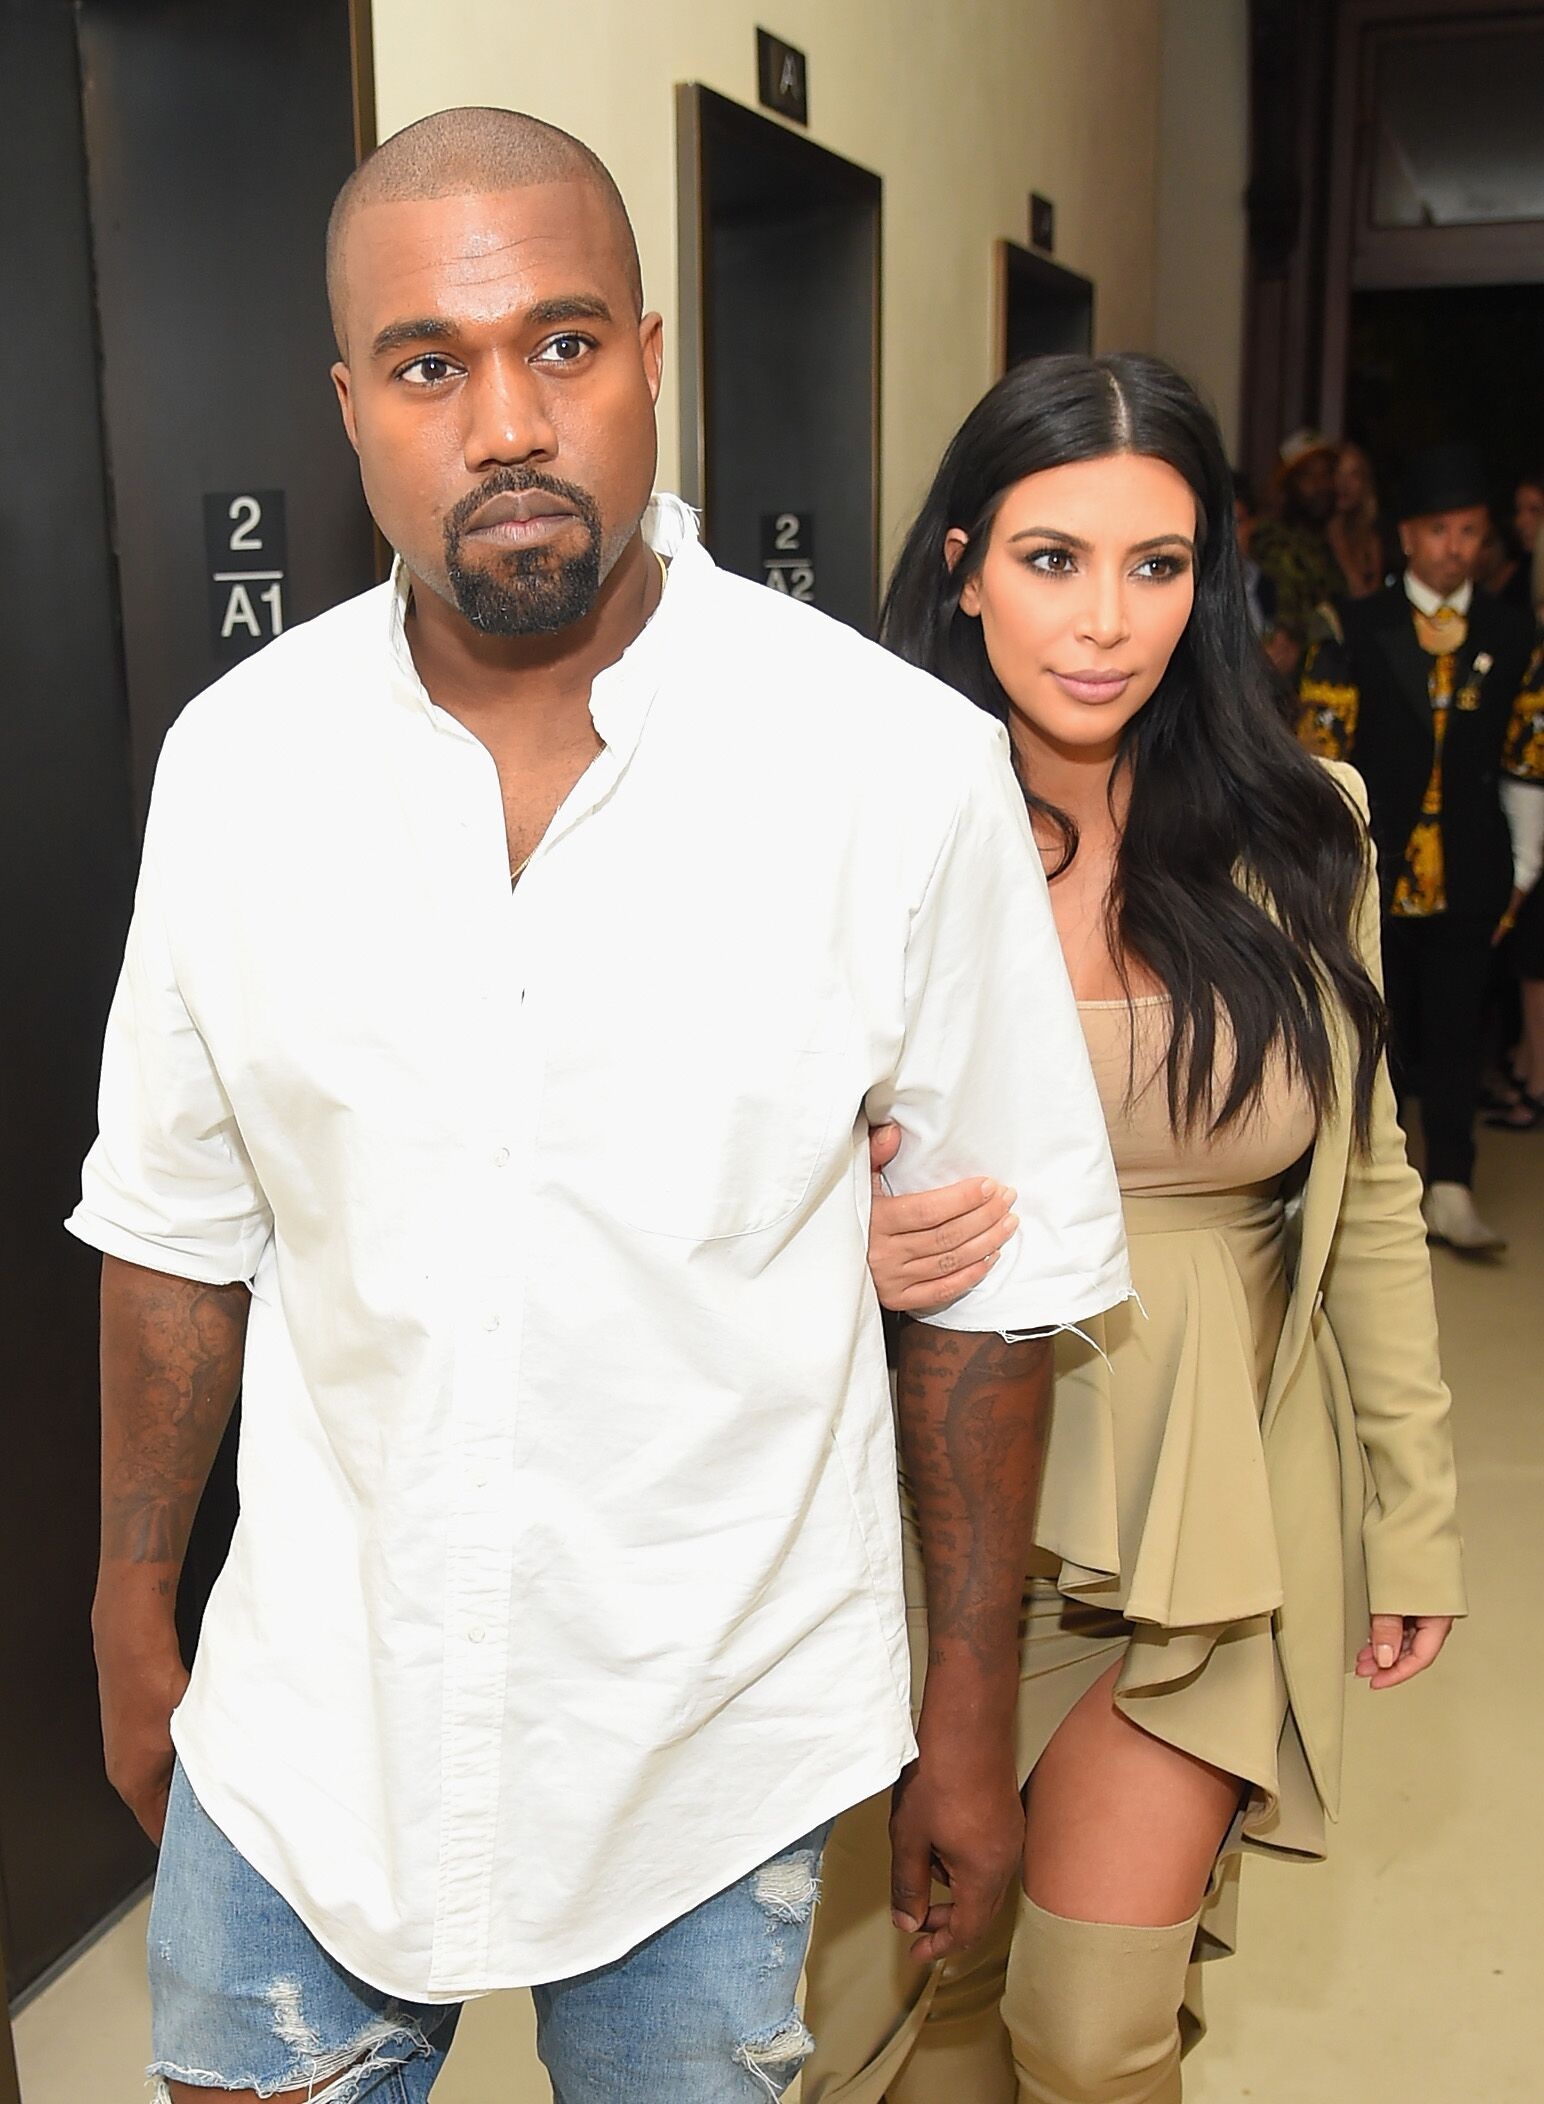 Kanye West and Kim Kardashian-West at the Rihanna Party on September 10, 2015, in New York City | Photo: Michael Loccisano/Getty Images